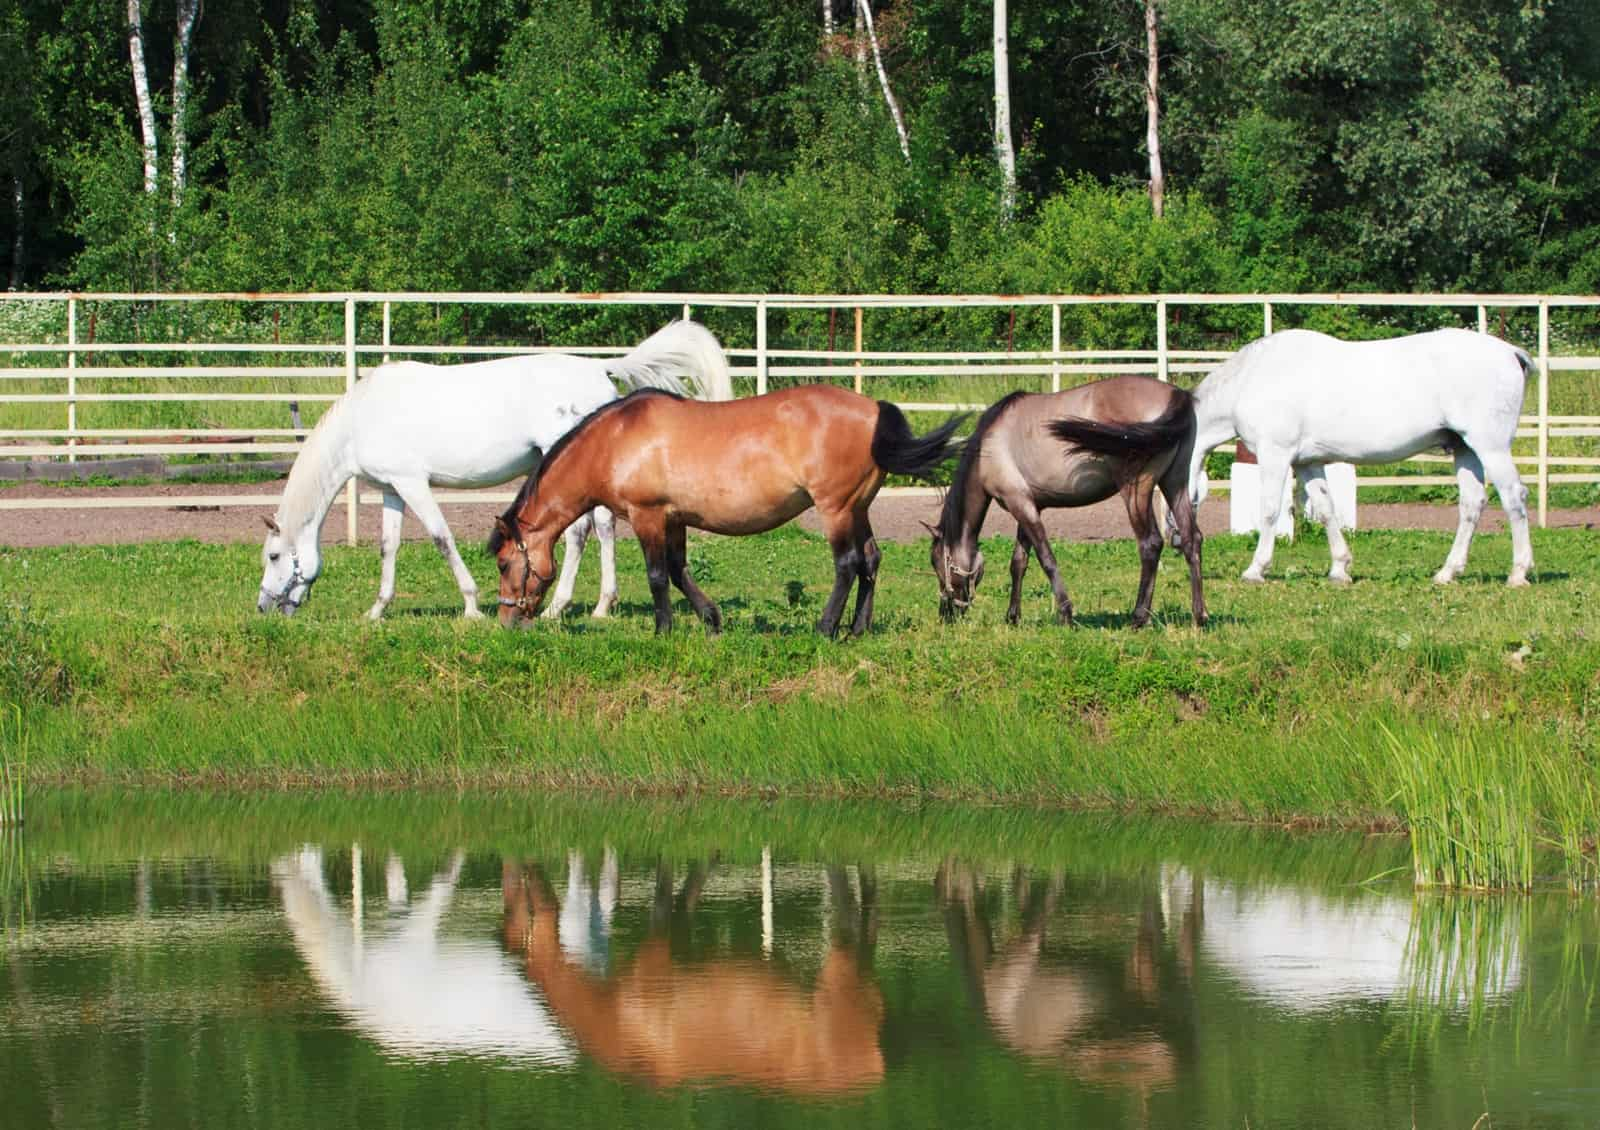 Horses Grazing by Pond, potomac horse fever tennessee; Potomac horse fever in a Maryland pony